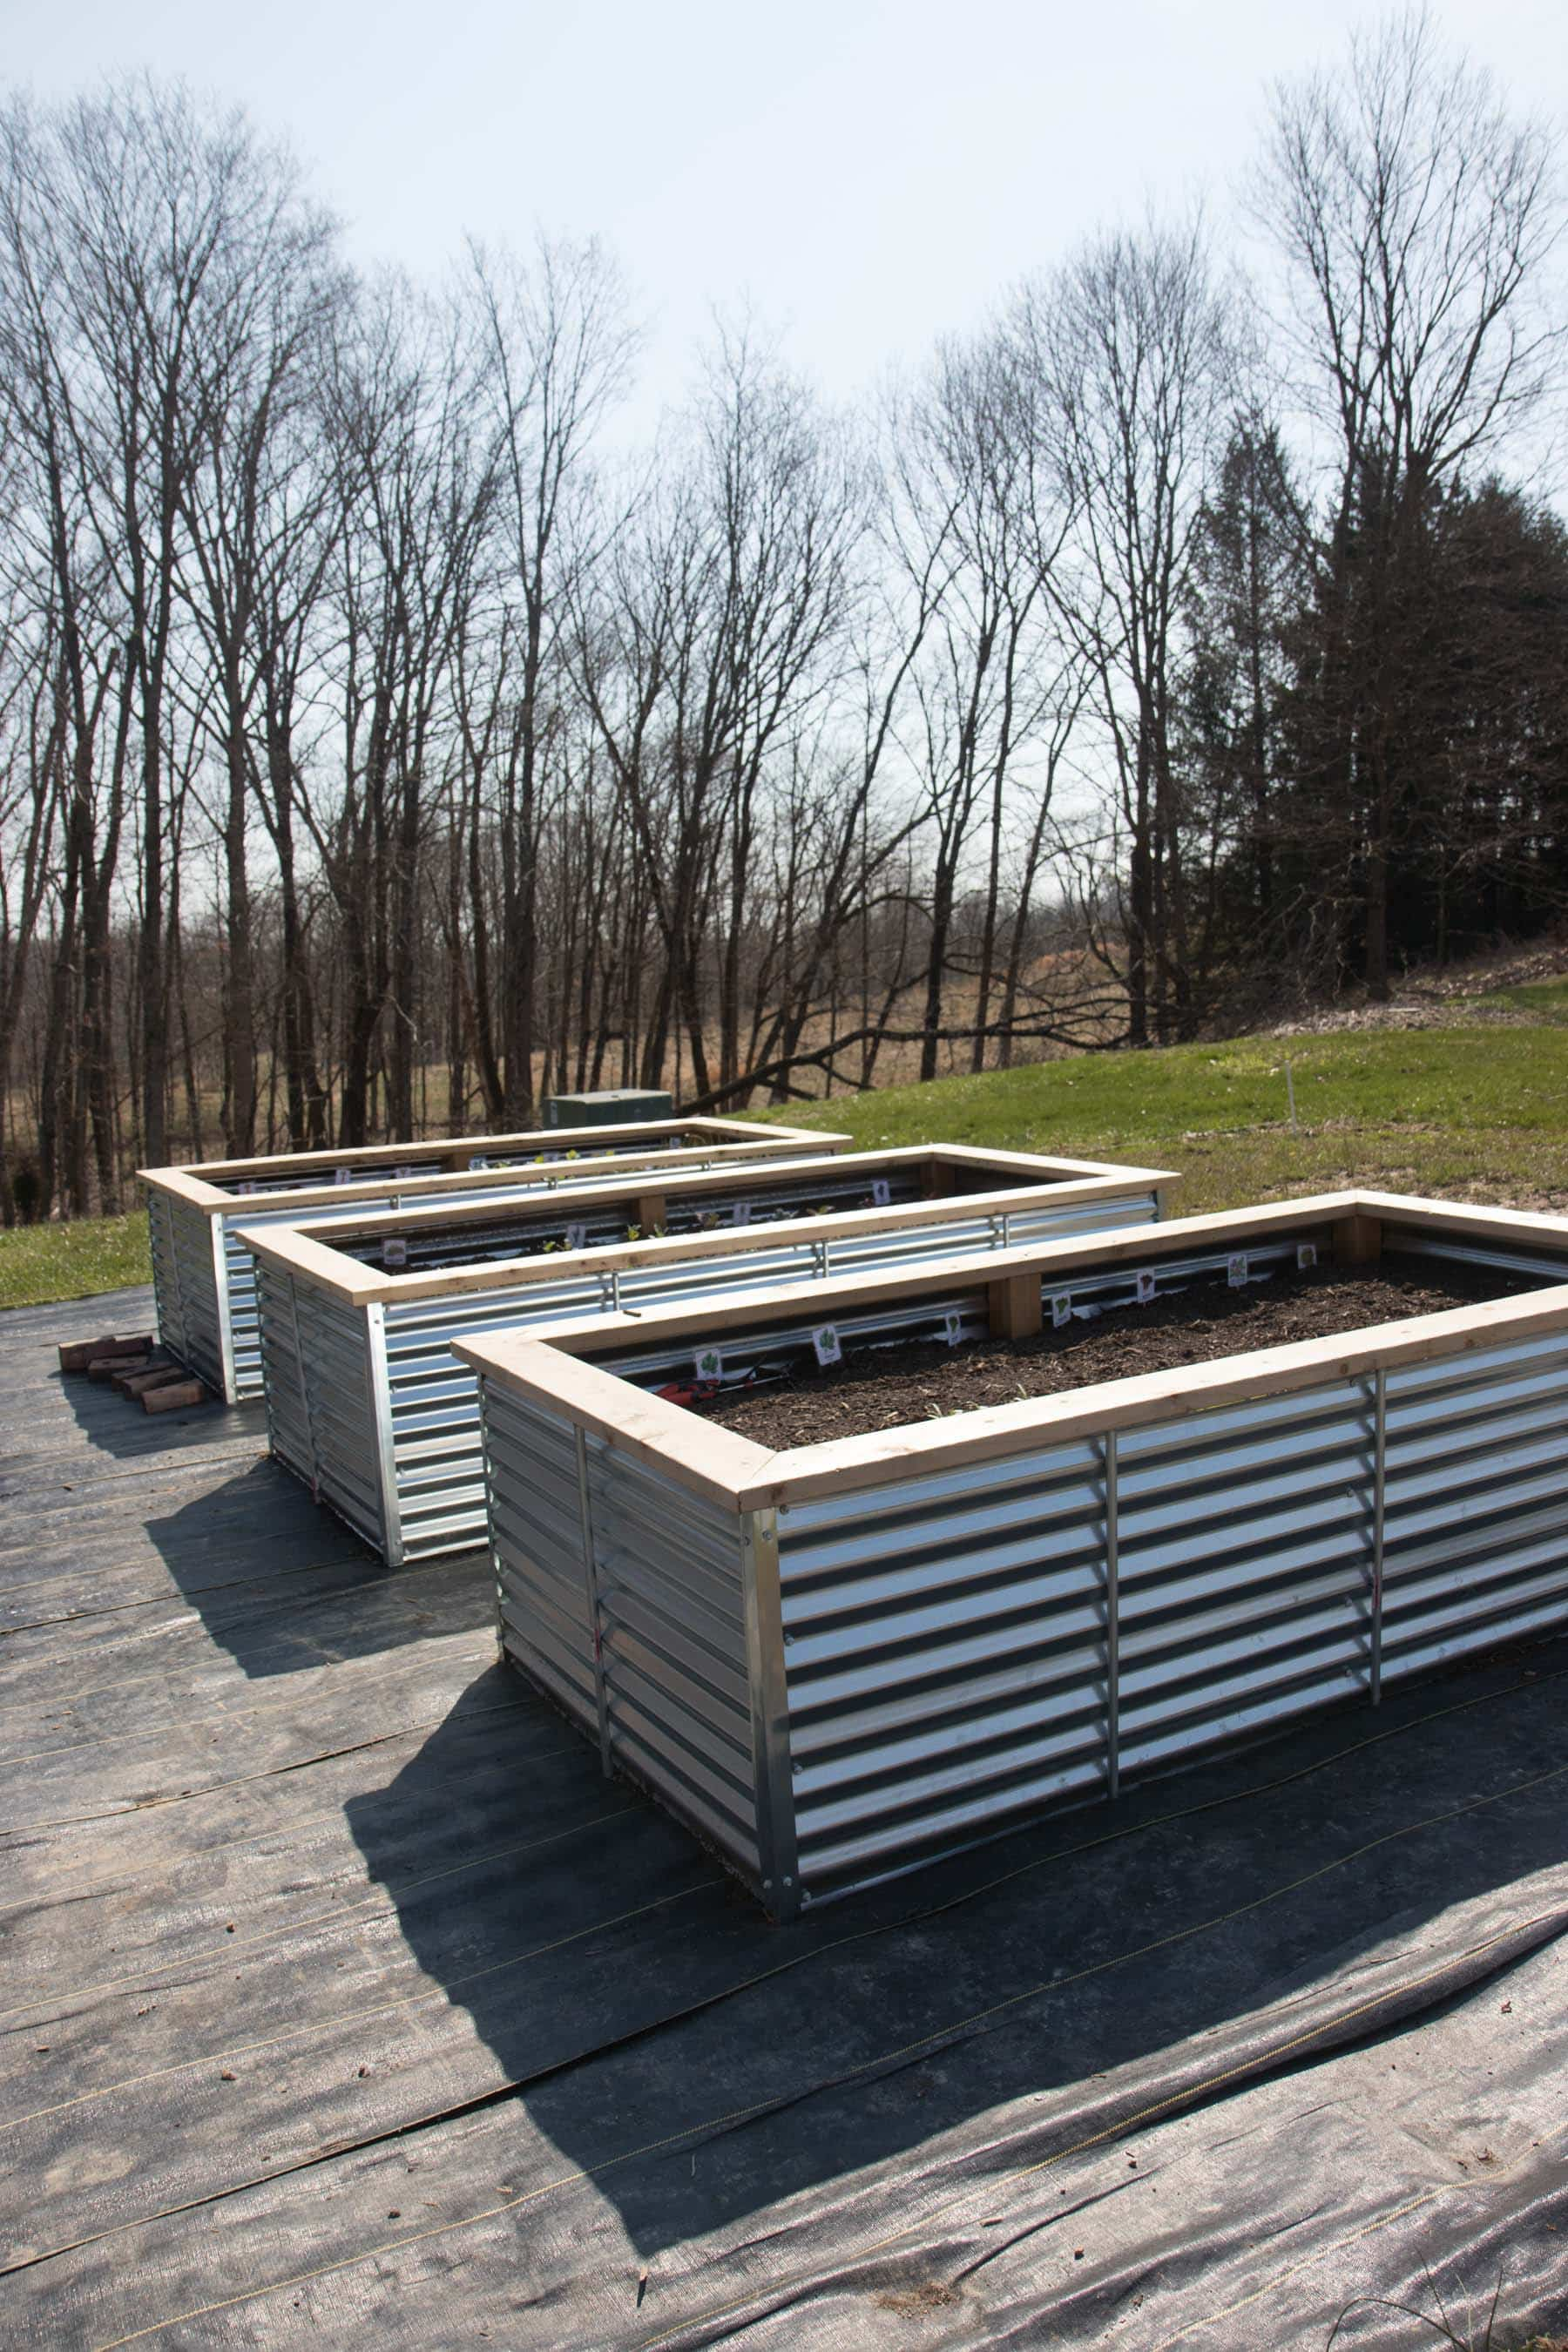 Three galvanized steel raised beds lined up on landscape fabric